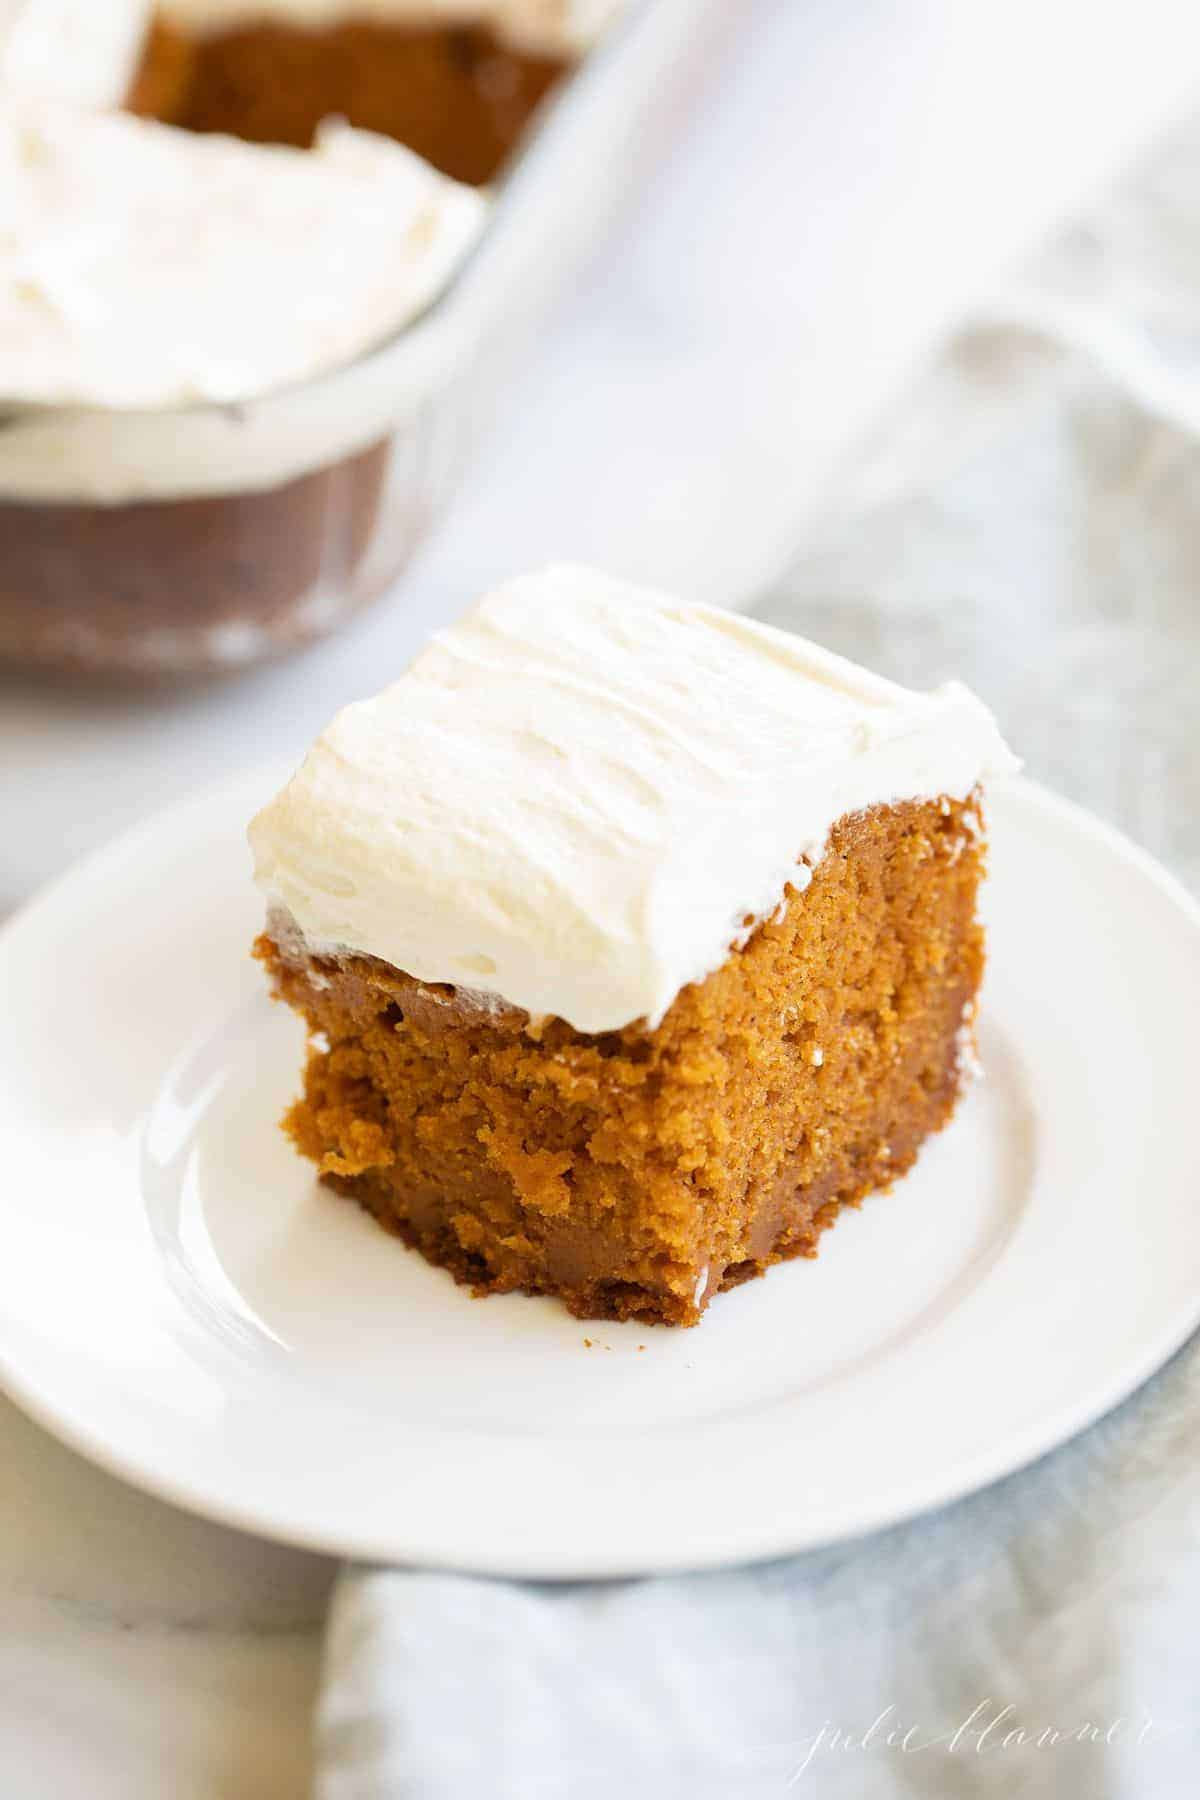 Small white plate with a slice of pumpkin cake, glass baking dish of cake in the background. #pumpkincake #pumpkincakerecipe